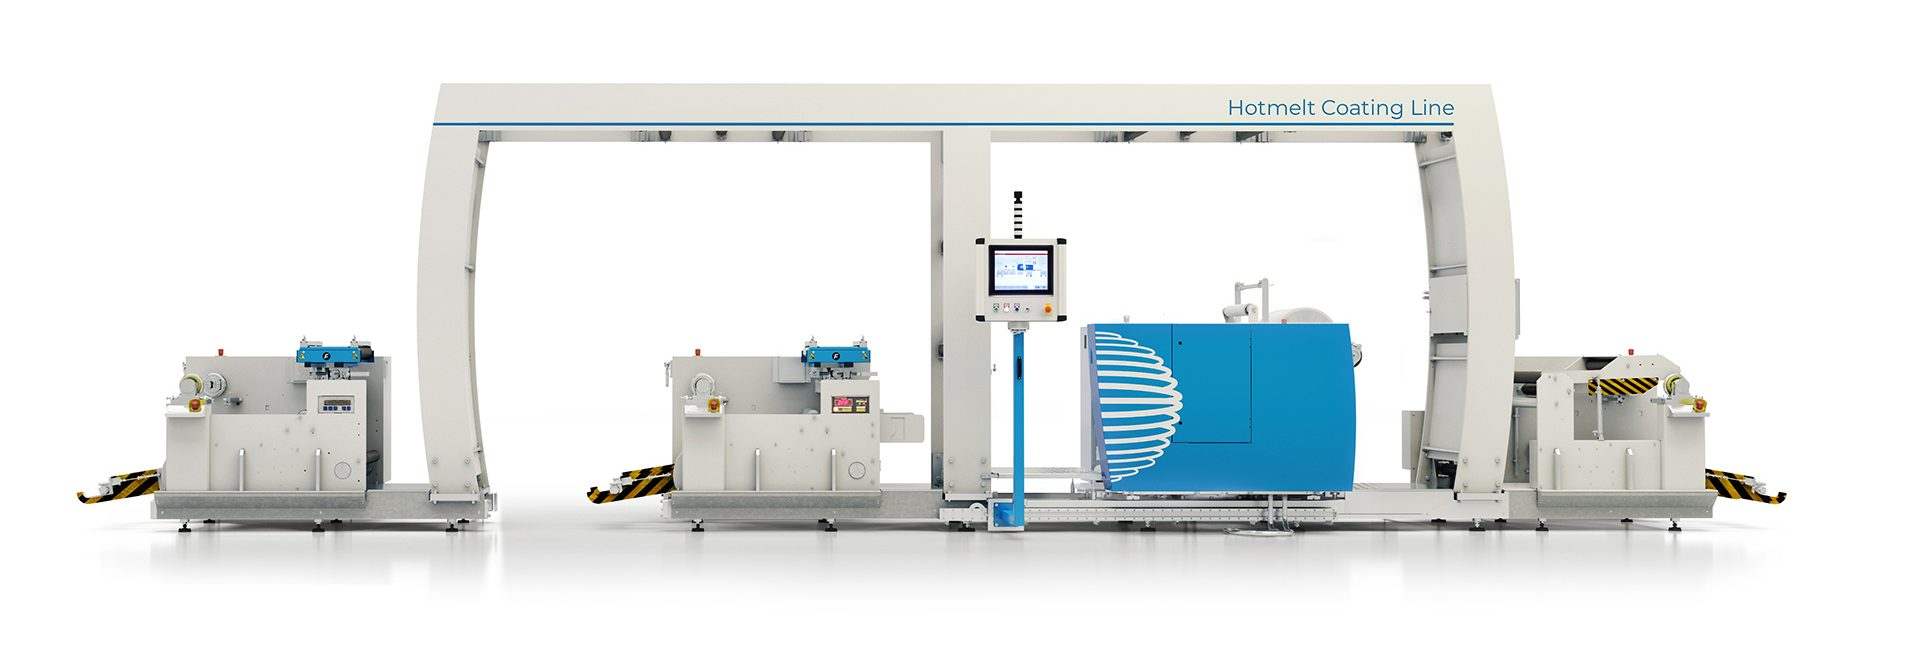 Hotmelt_Coating_Line